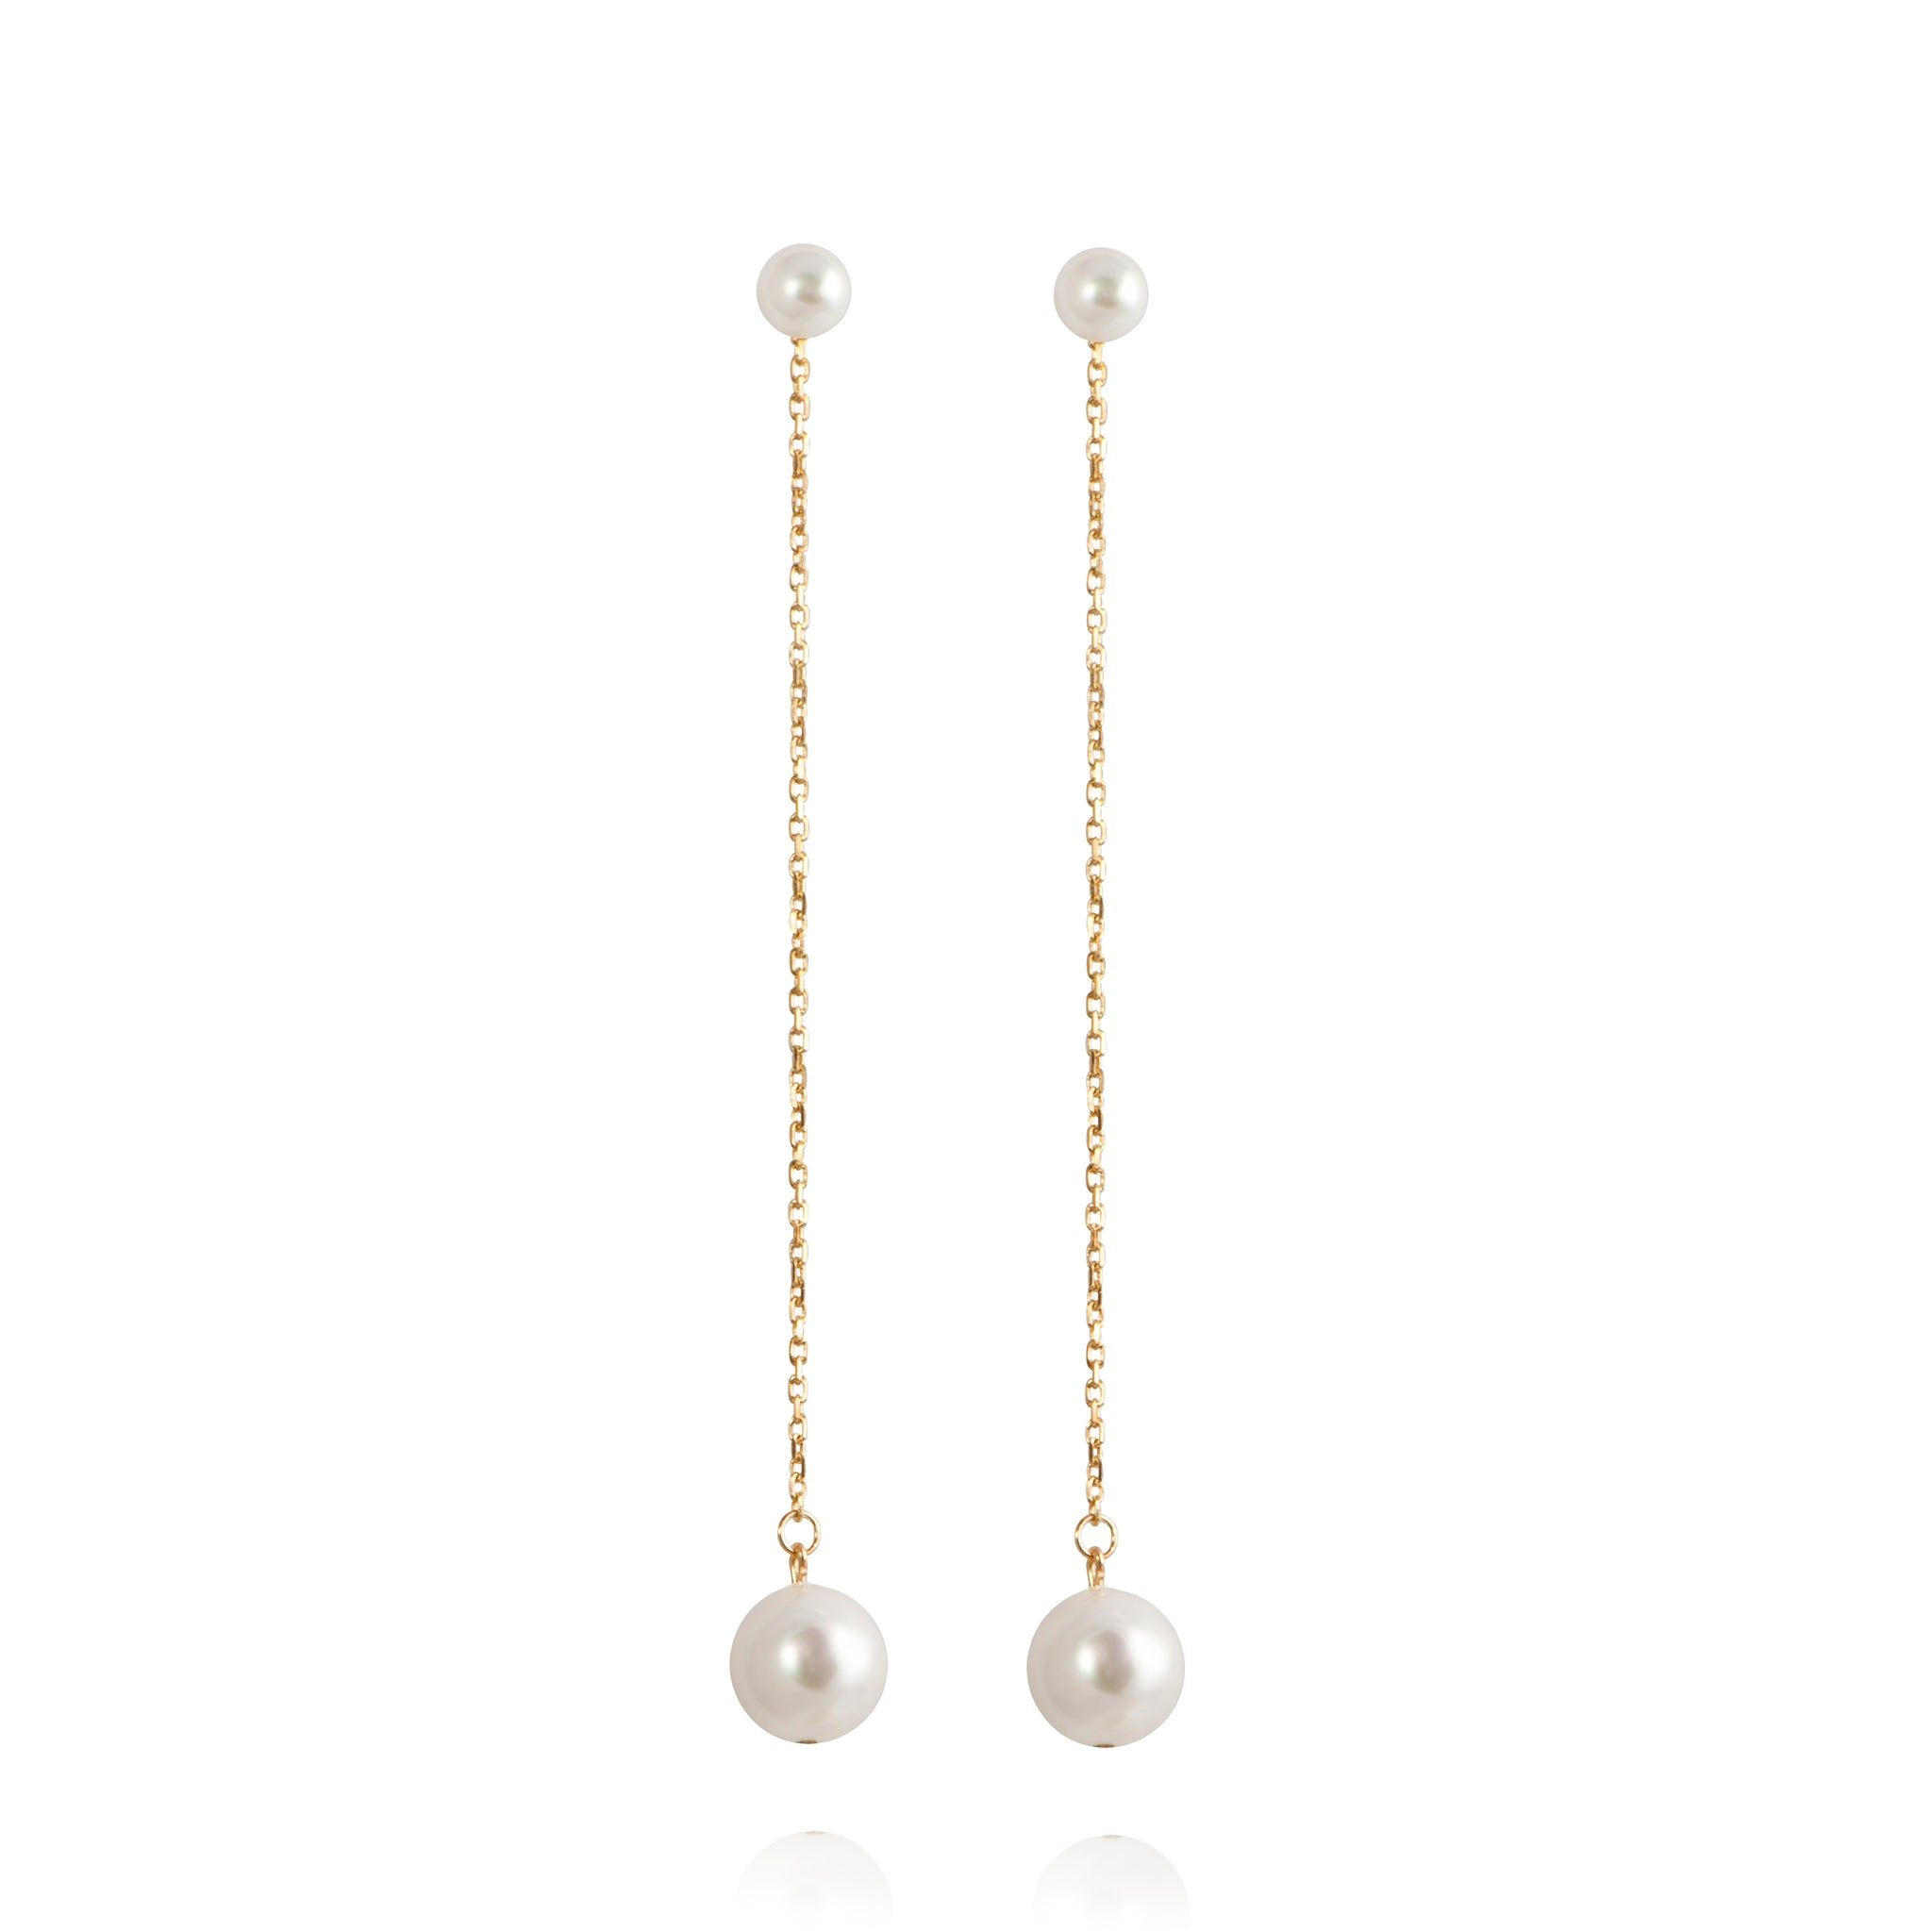 APPLES & FIGS - PEARL MUSE CHAIN EARRINGS